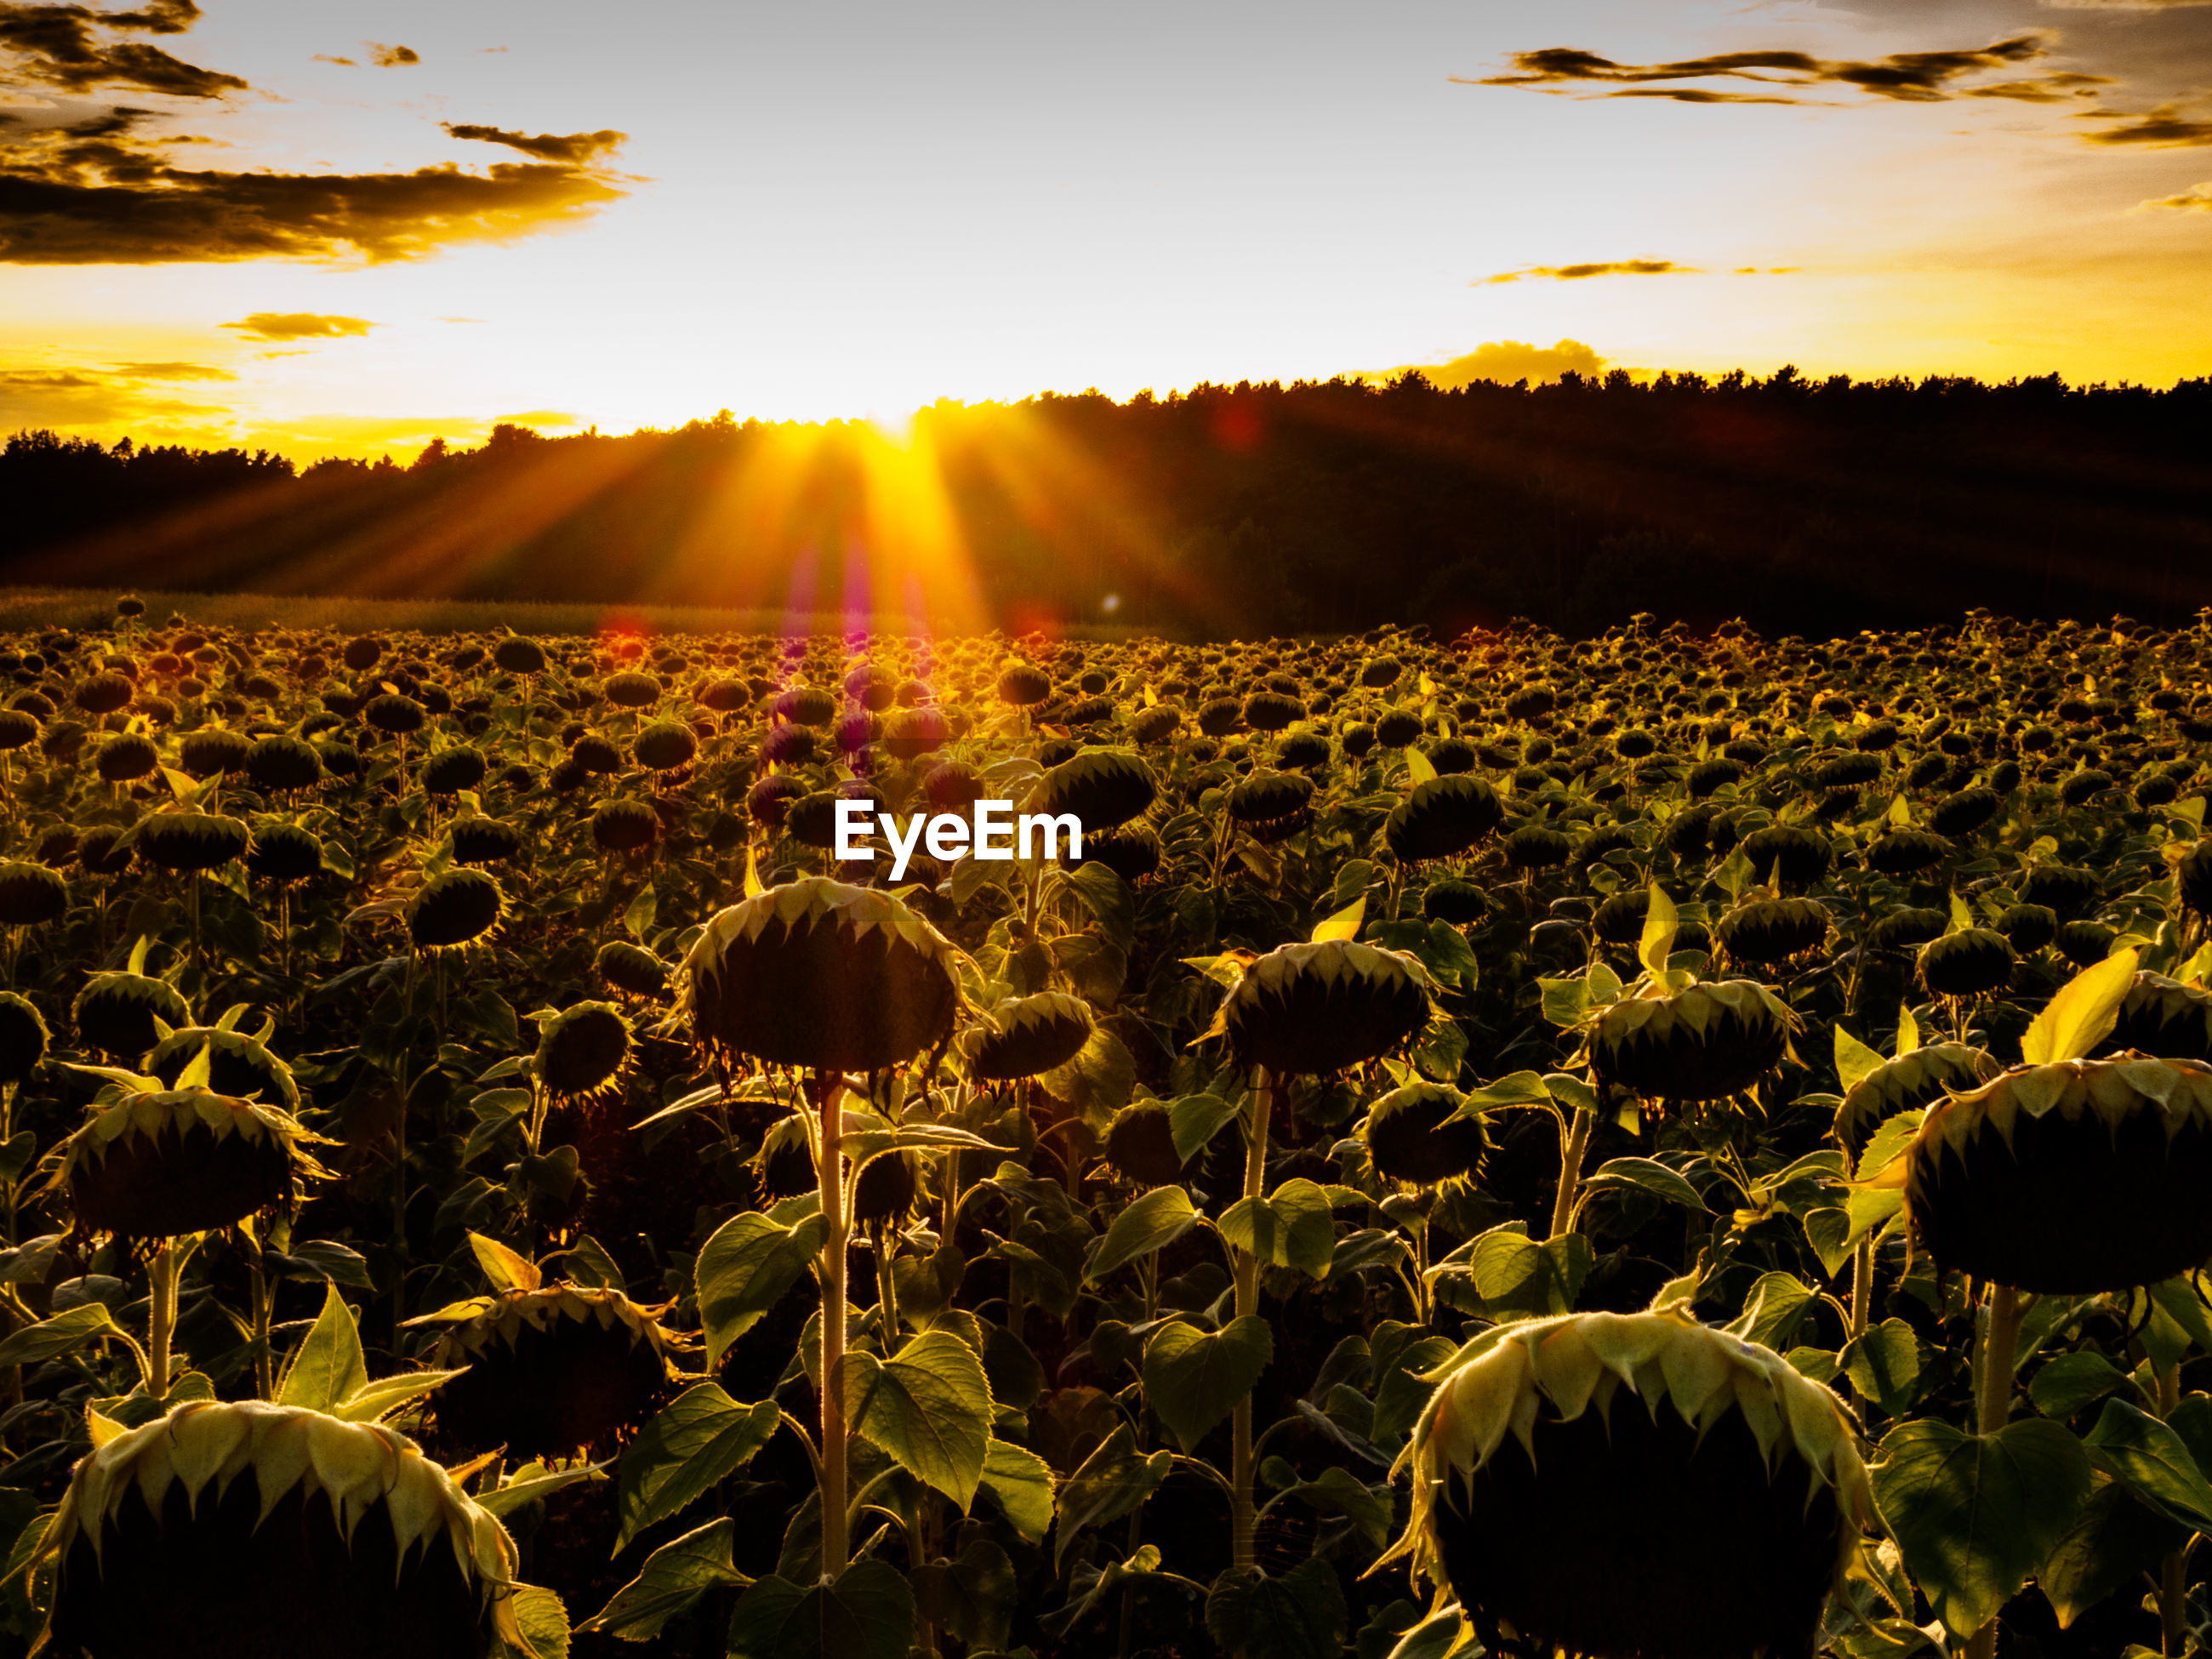 VIEW OF SUNFLOWER FIELD AT SUNSET